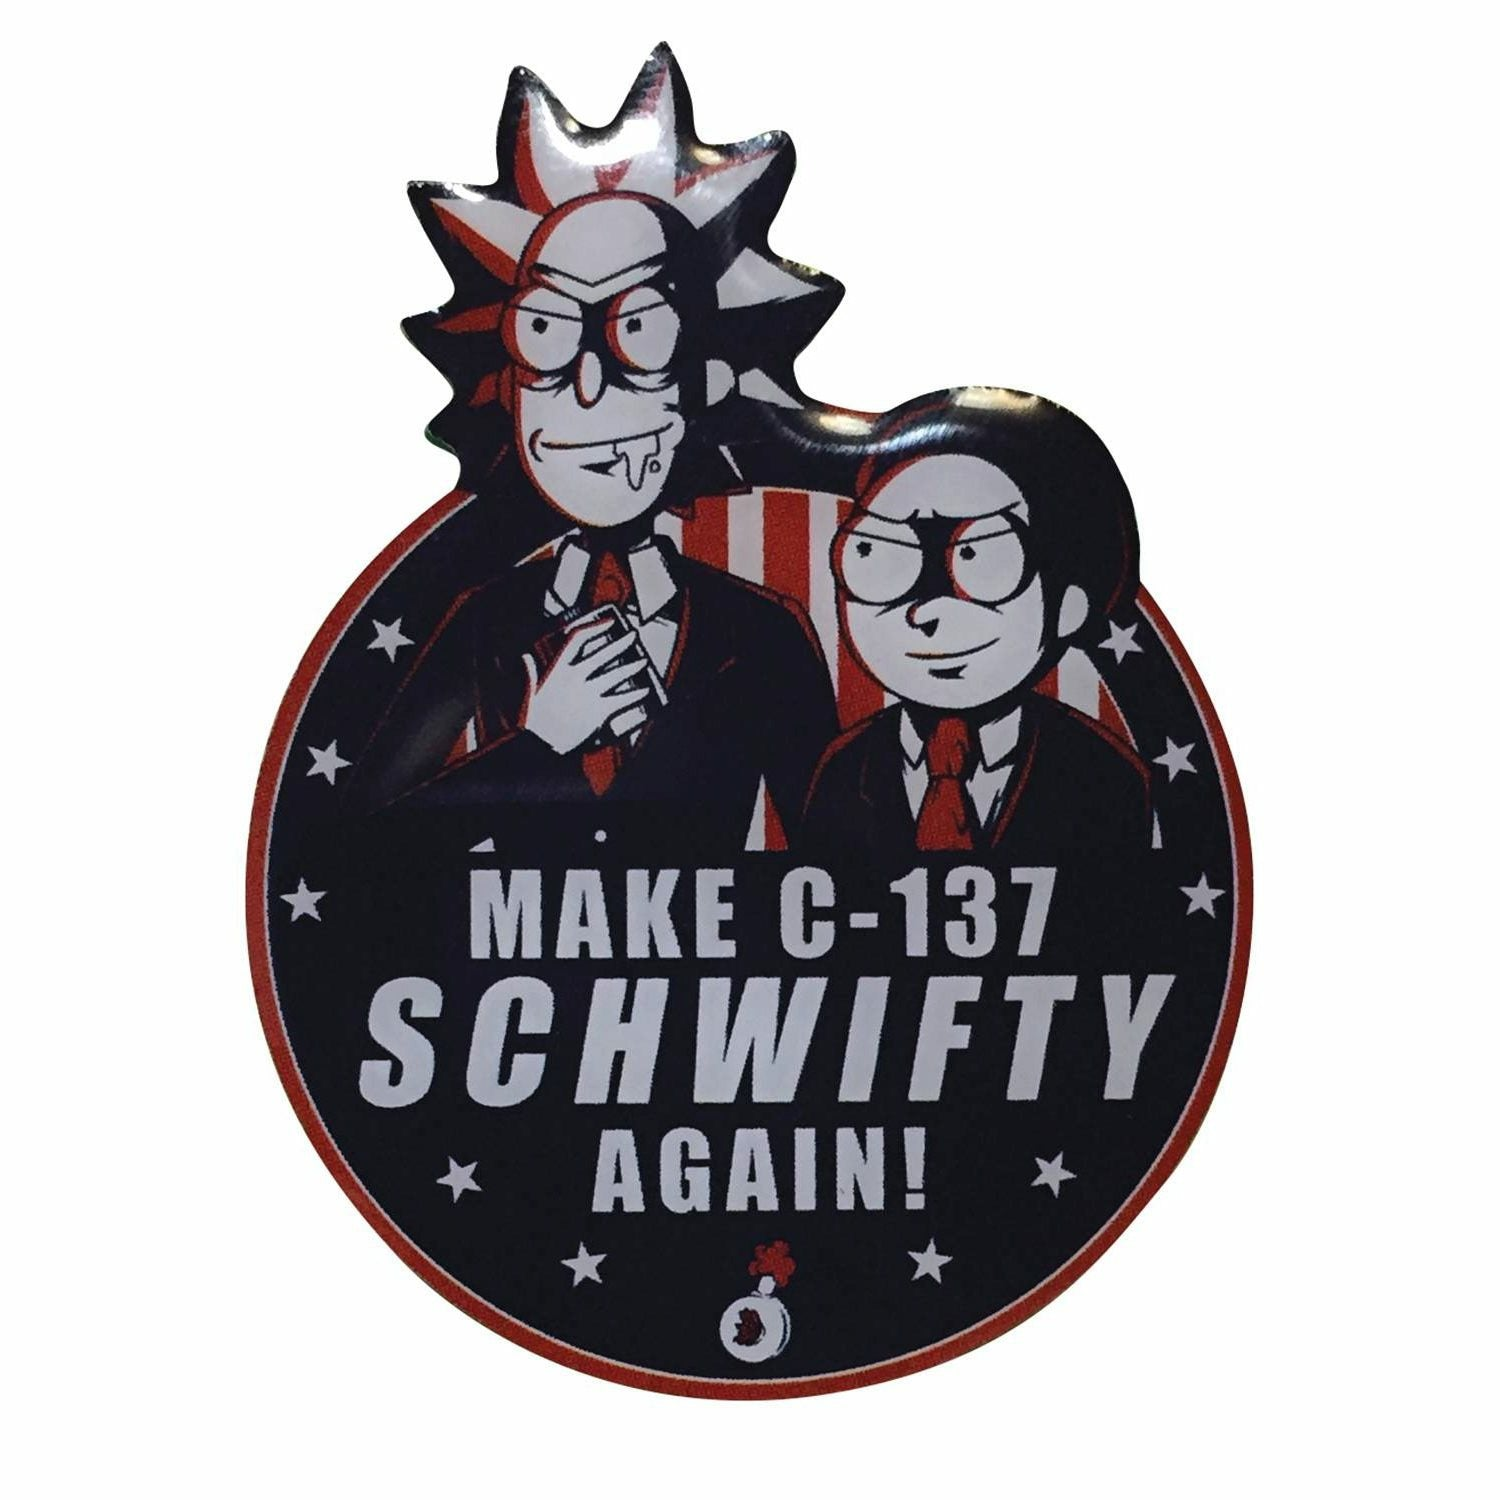 Rick and Morty Make C-137 SCHWIFTY Again! Lapel Pin